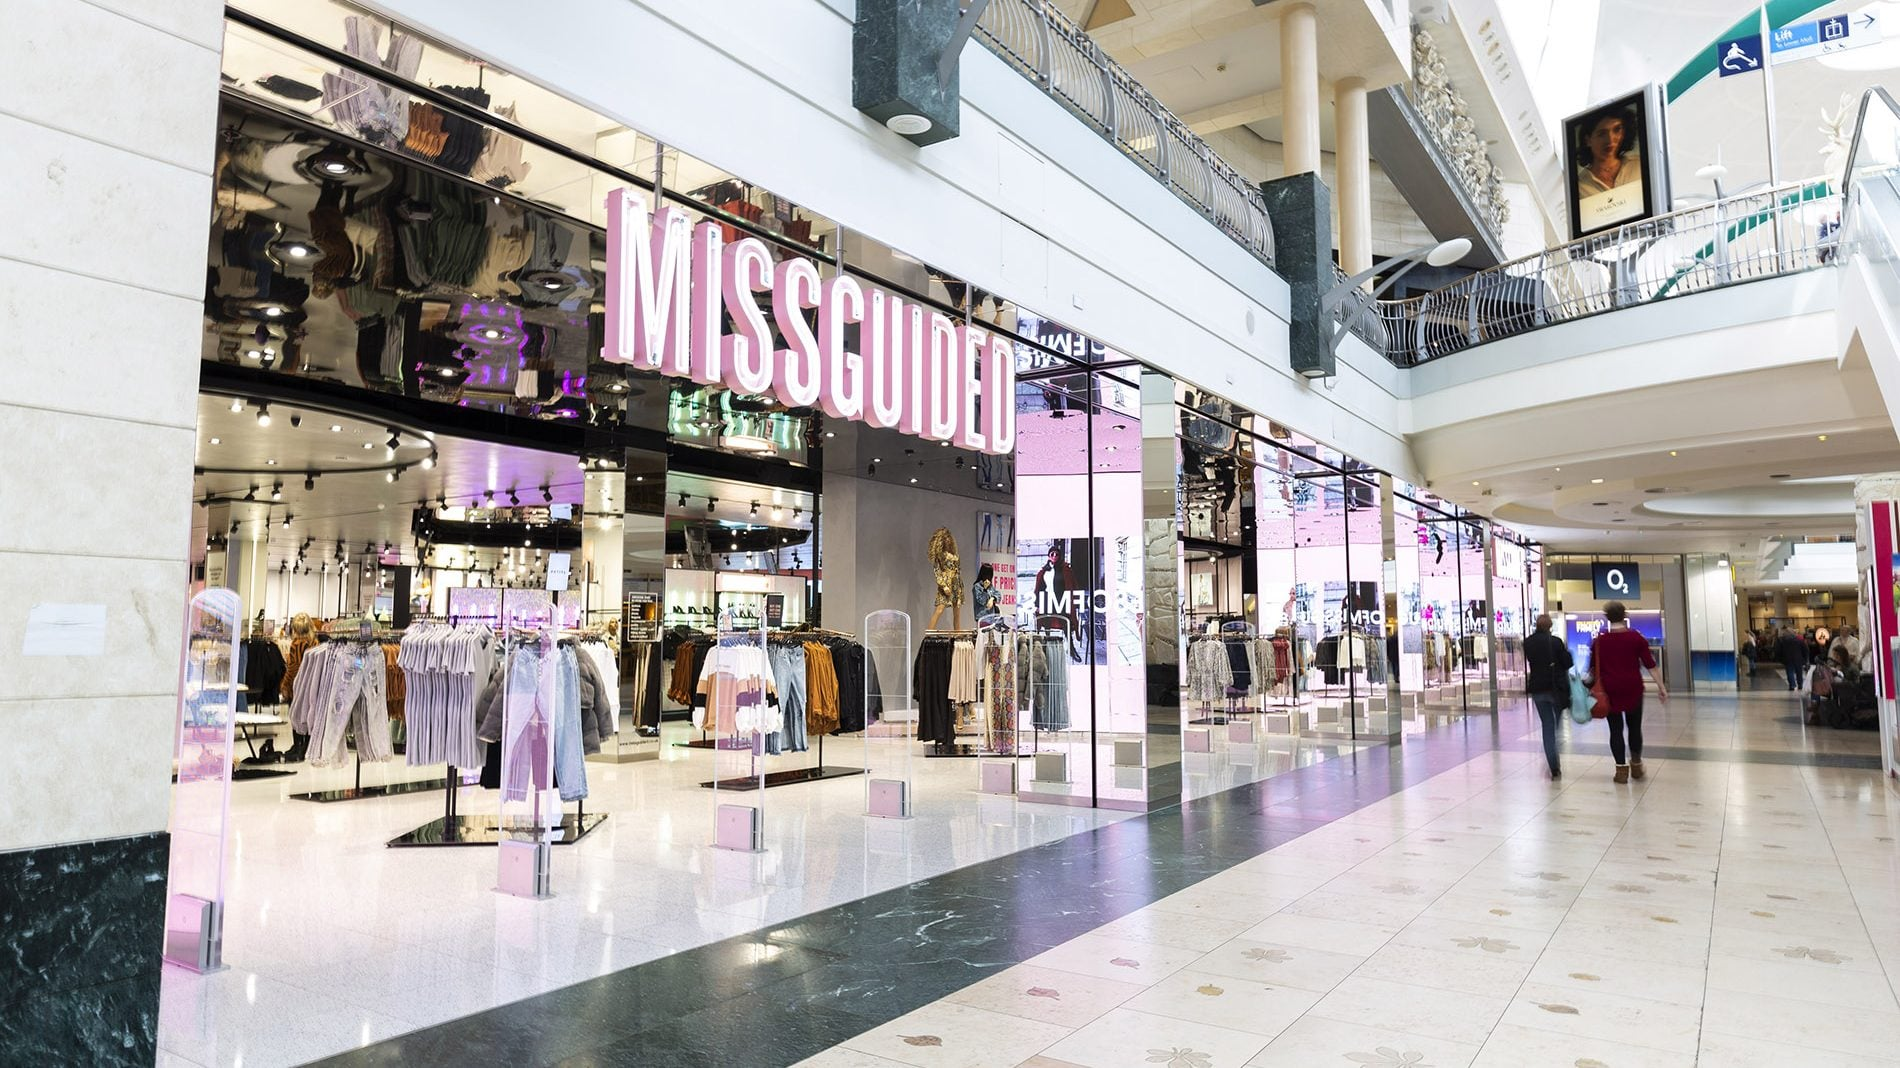 Missguided full store front from side angle